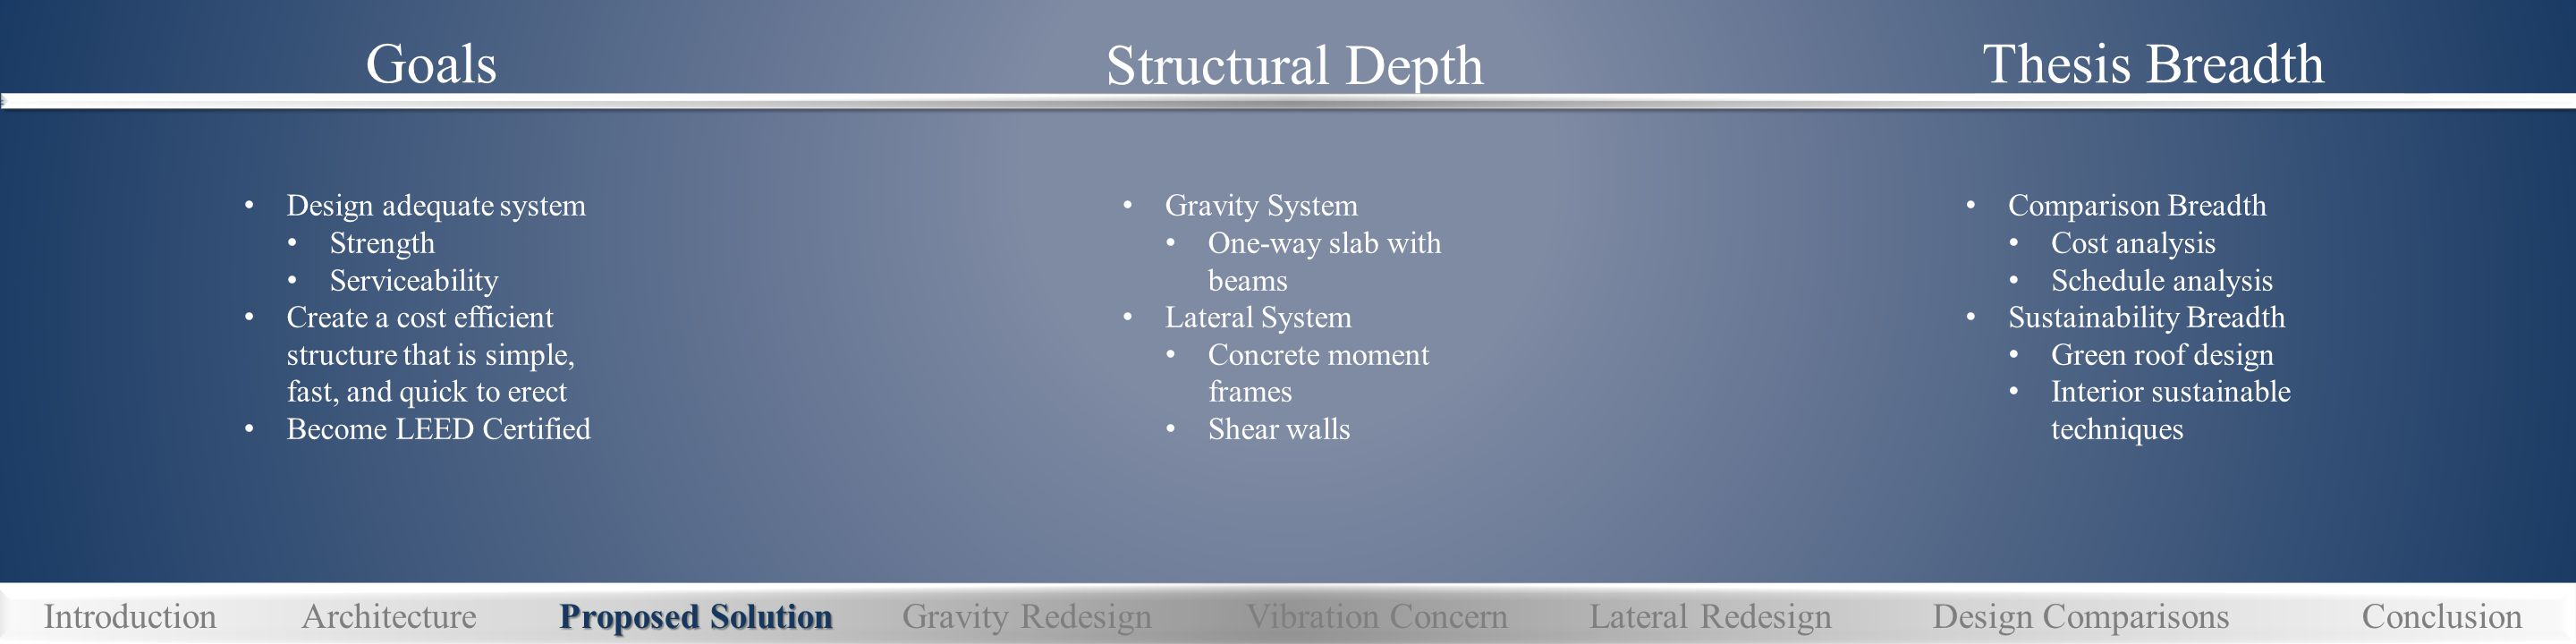 Structural Depth GoalsThesis Breadth Gravity System One-way slab with beams Lateral System Concrete moment frames Shear walls Design adequate system Strength Serviceability Create a cost efficient structure that is simple, fast, and quick to erect Become LEED Certified Comparison Breadth Cost analysis Schedule analysis Sustainability Breadth Green roof design Interior sustainable techniques Proposed Solution IntroductionArchitectureProposed SolutionGravity RedesignVibration ConcernLateral RedesignDesign ComparisonsConclusion